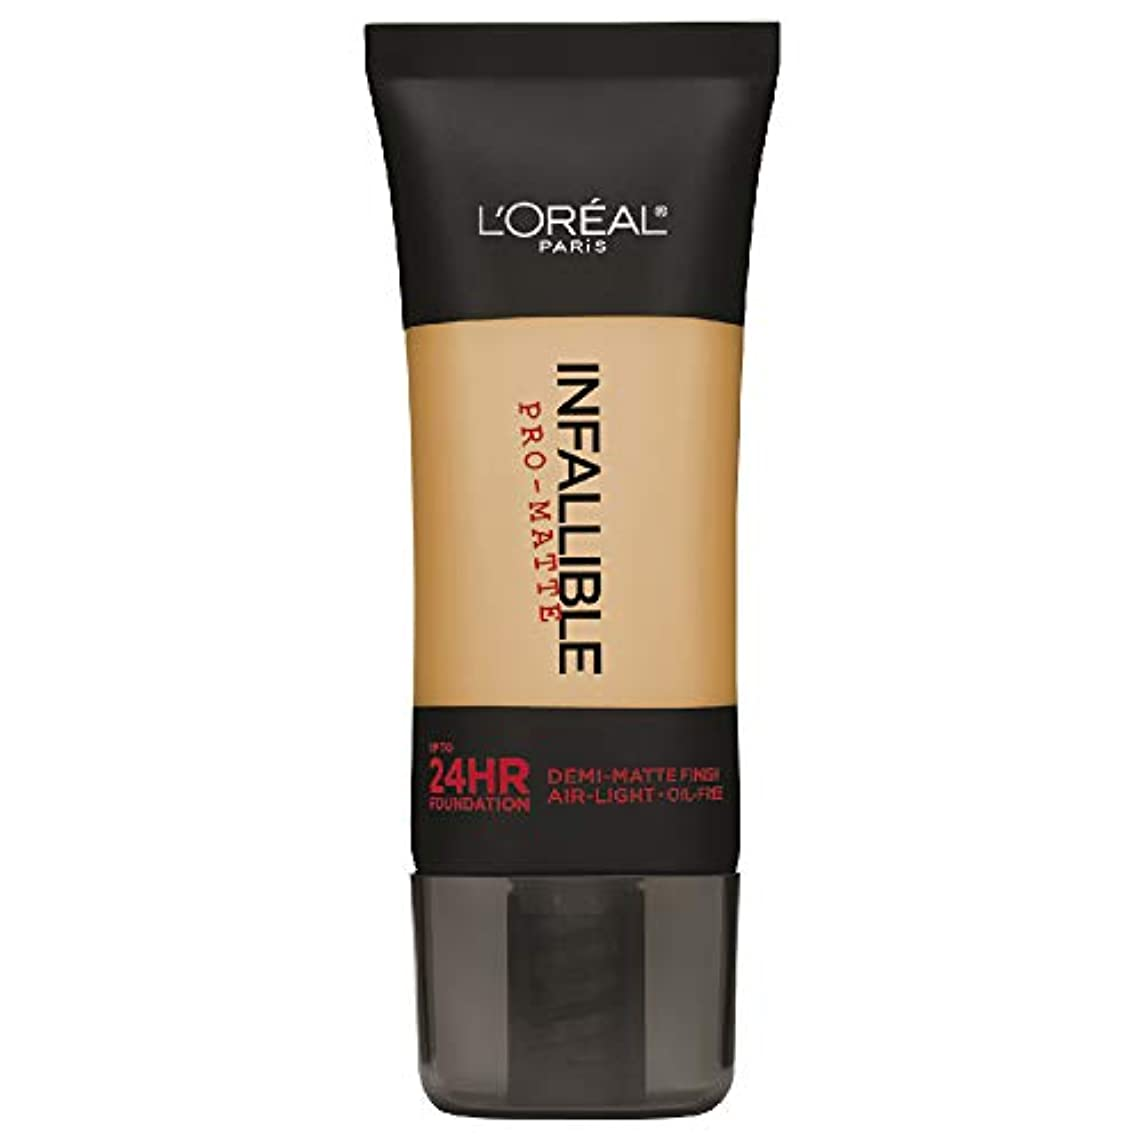 オーブンと組むボックスL'Oreal Paris Infallible Pro-Matte Foundation Makeup, 106 Sun Beige, 1 fl. oz[並行輸入品]